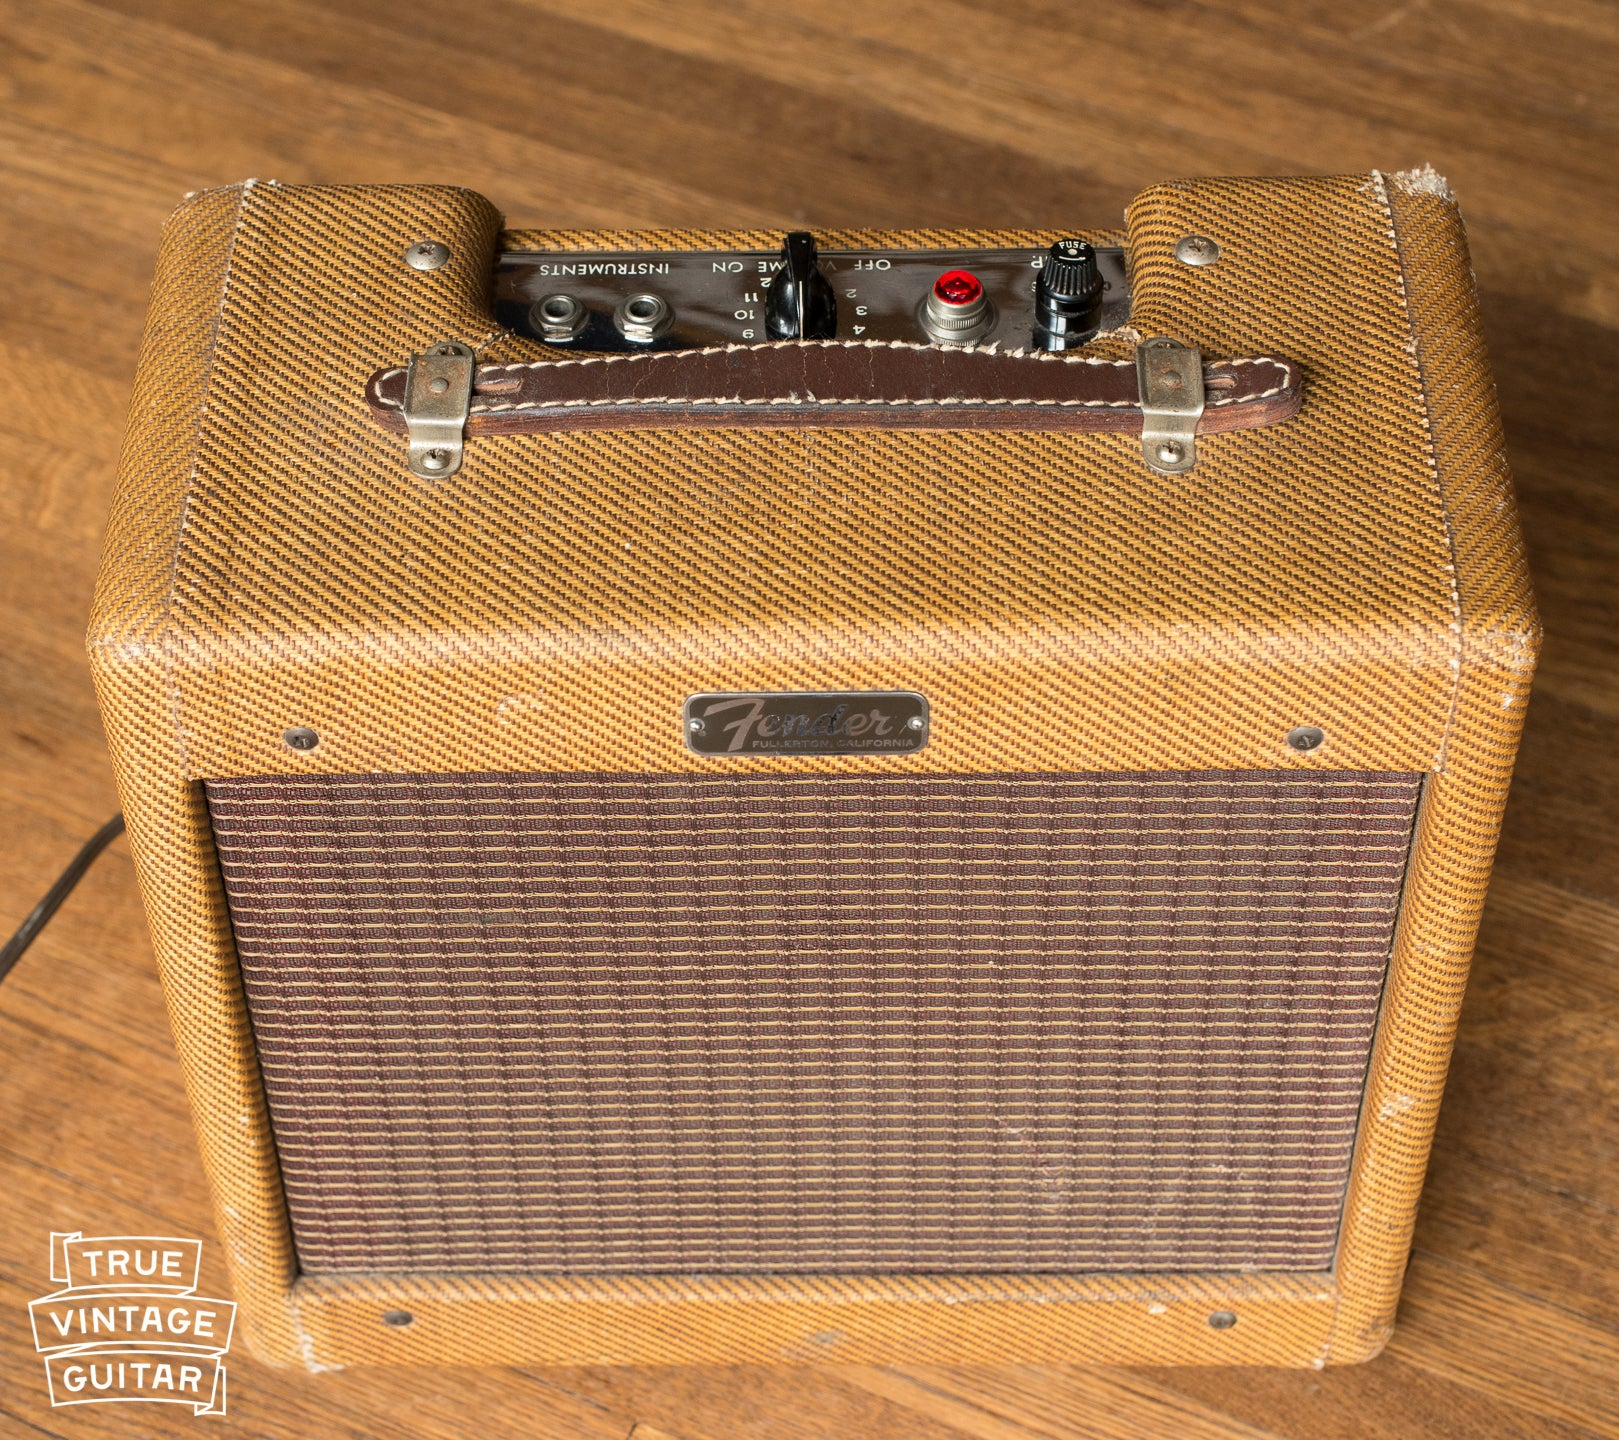 Where to sell vintage Fender amp